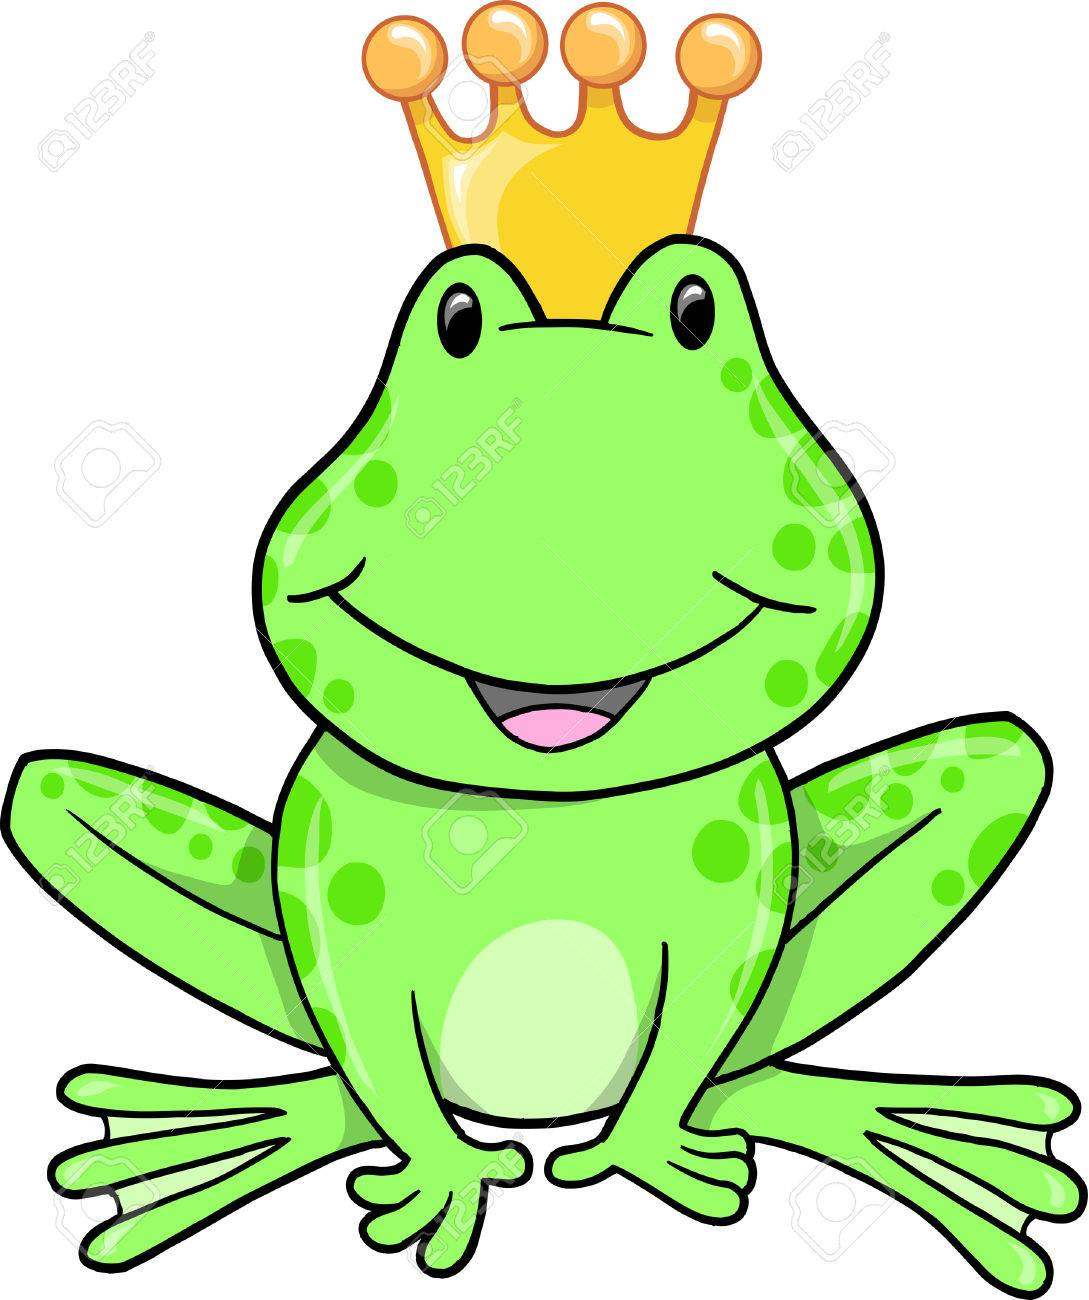 frog prince vector illustration royalty free cliparts vectors and rh 123rf com Leaping Frog Clip Art Cute Frog Silhouette